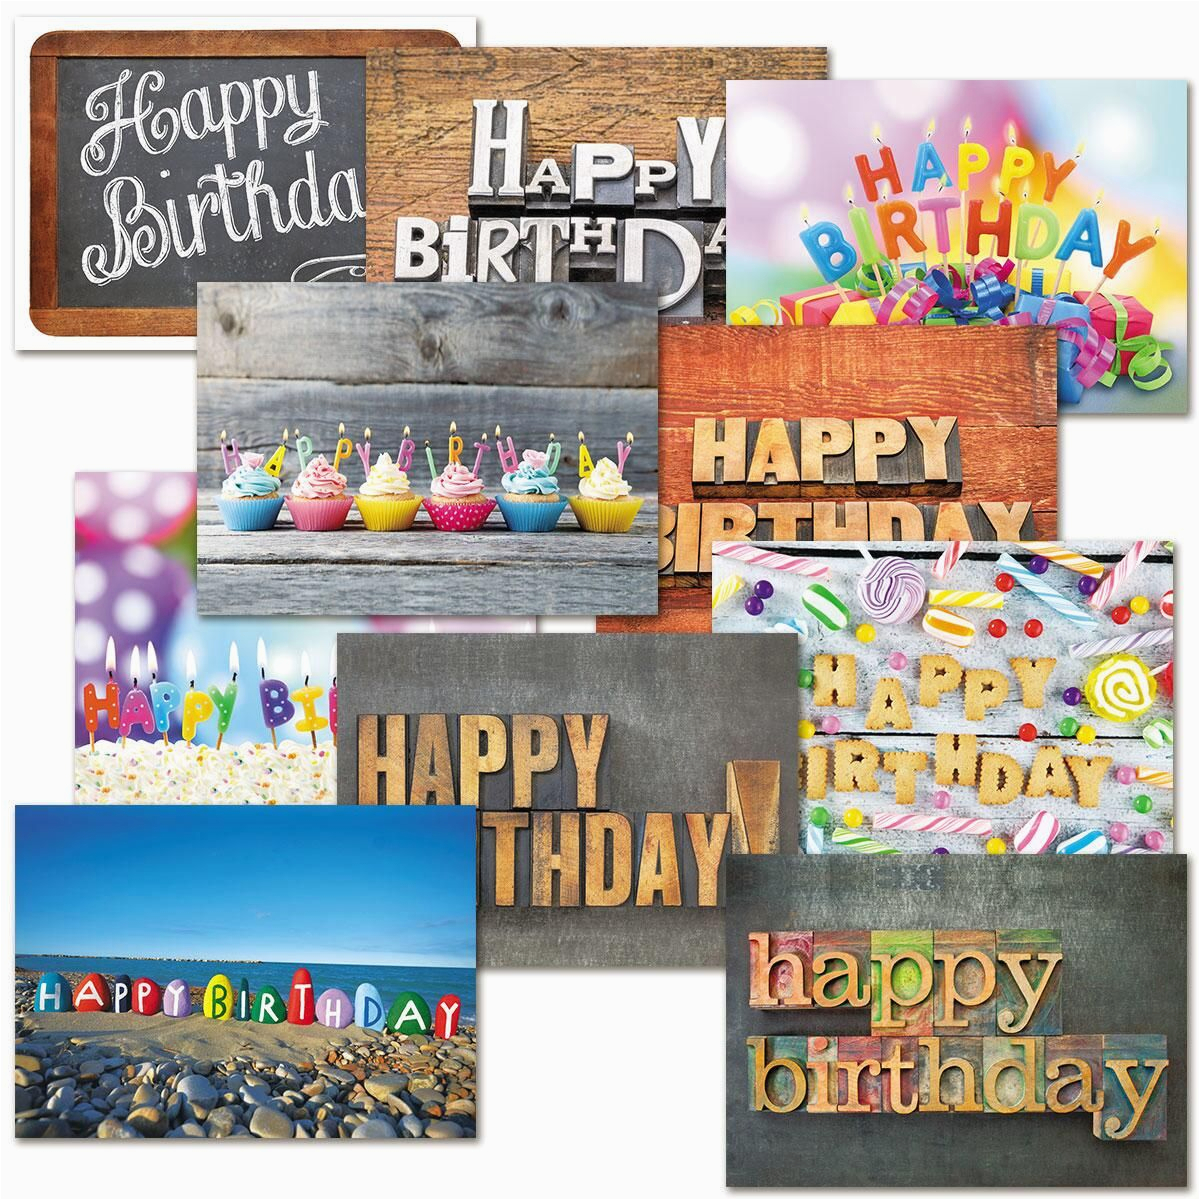 Birthday Cards Value Pack Playful Type Colorful Images Of